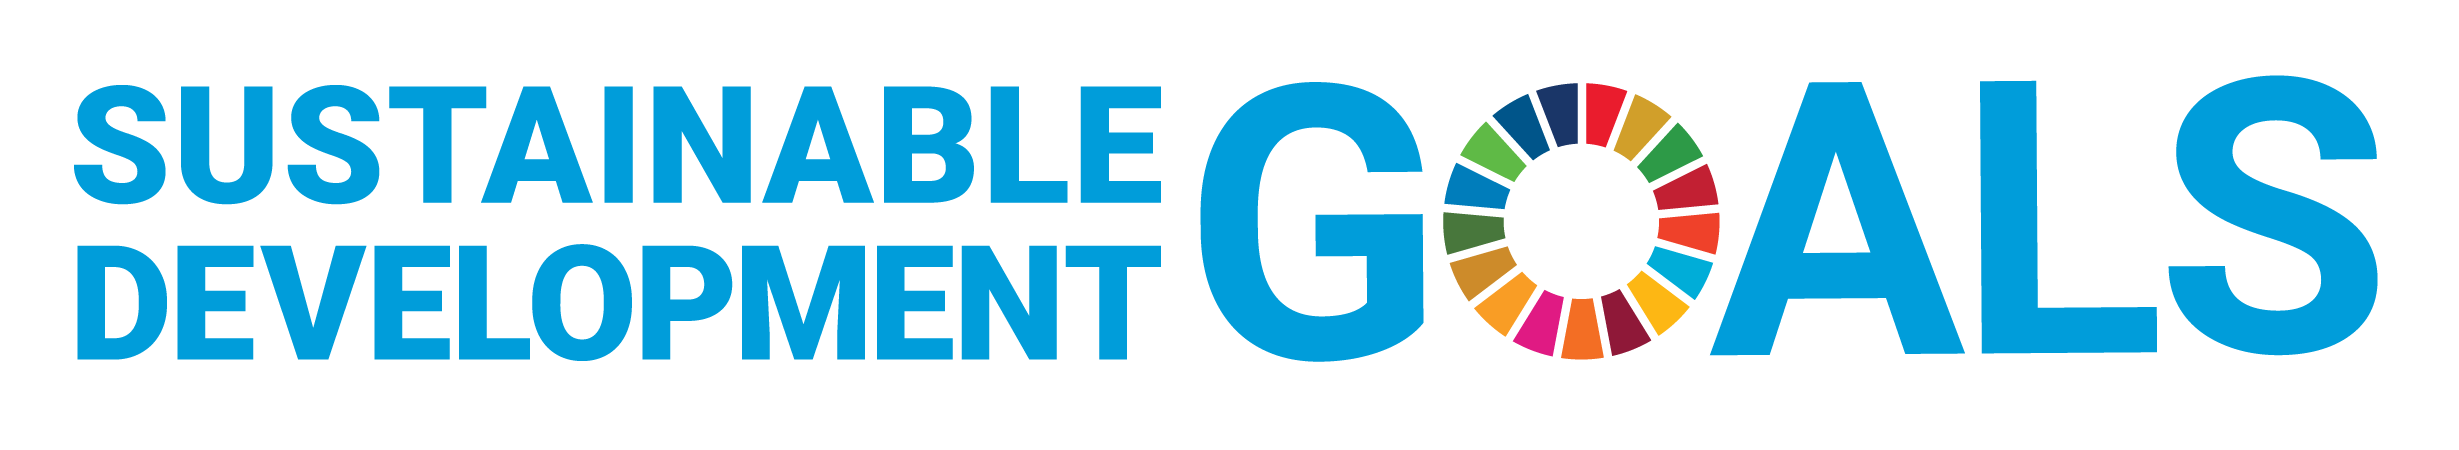 SDG logo without UN emblem